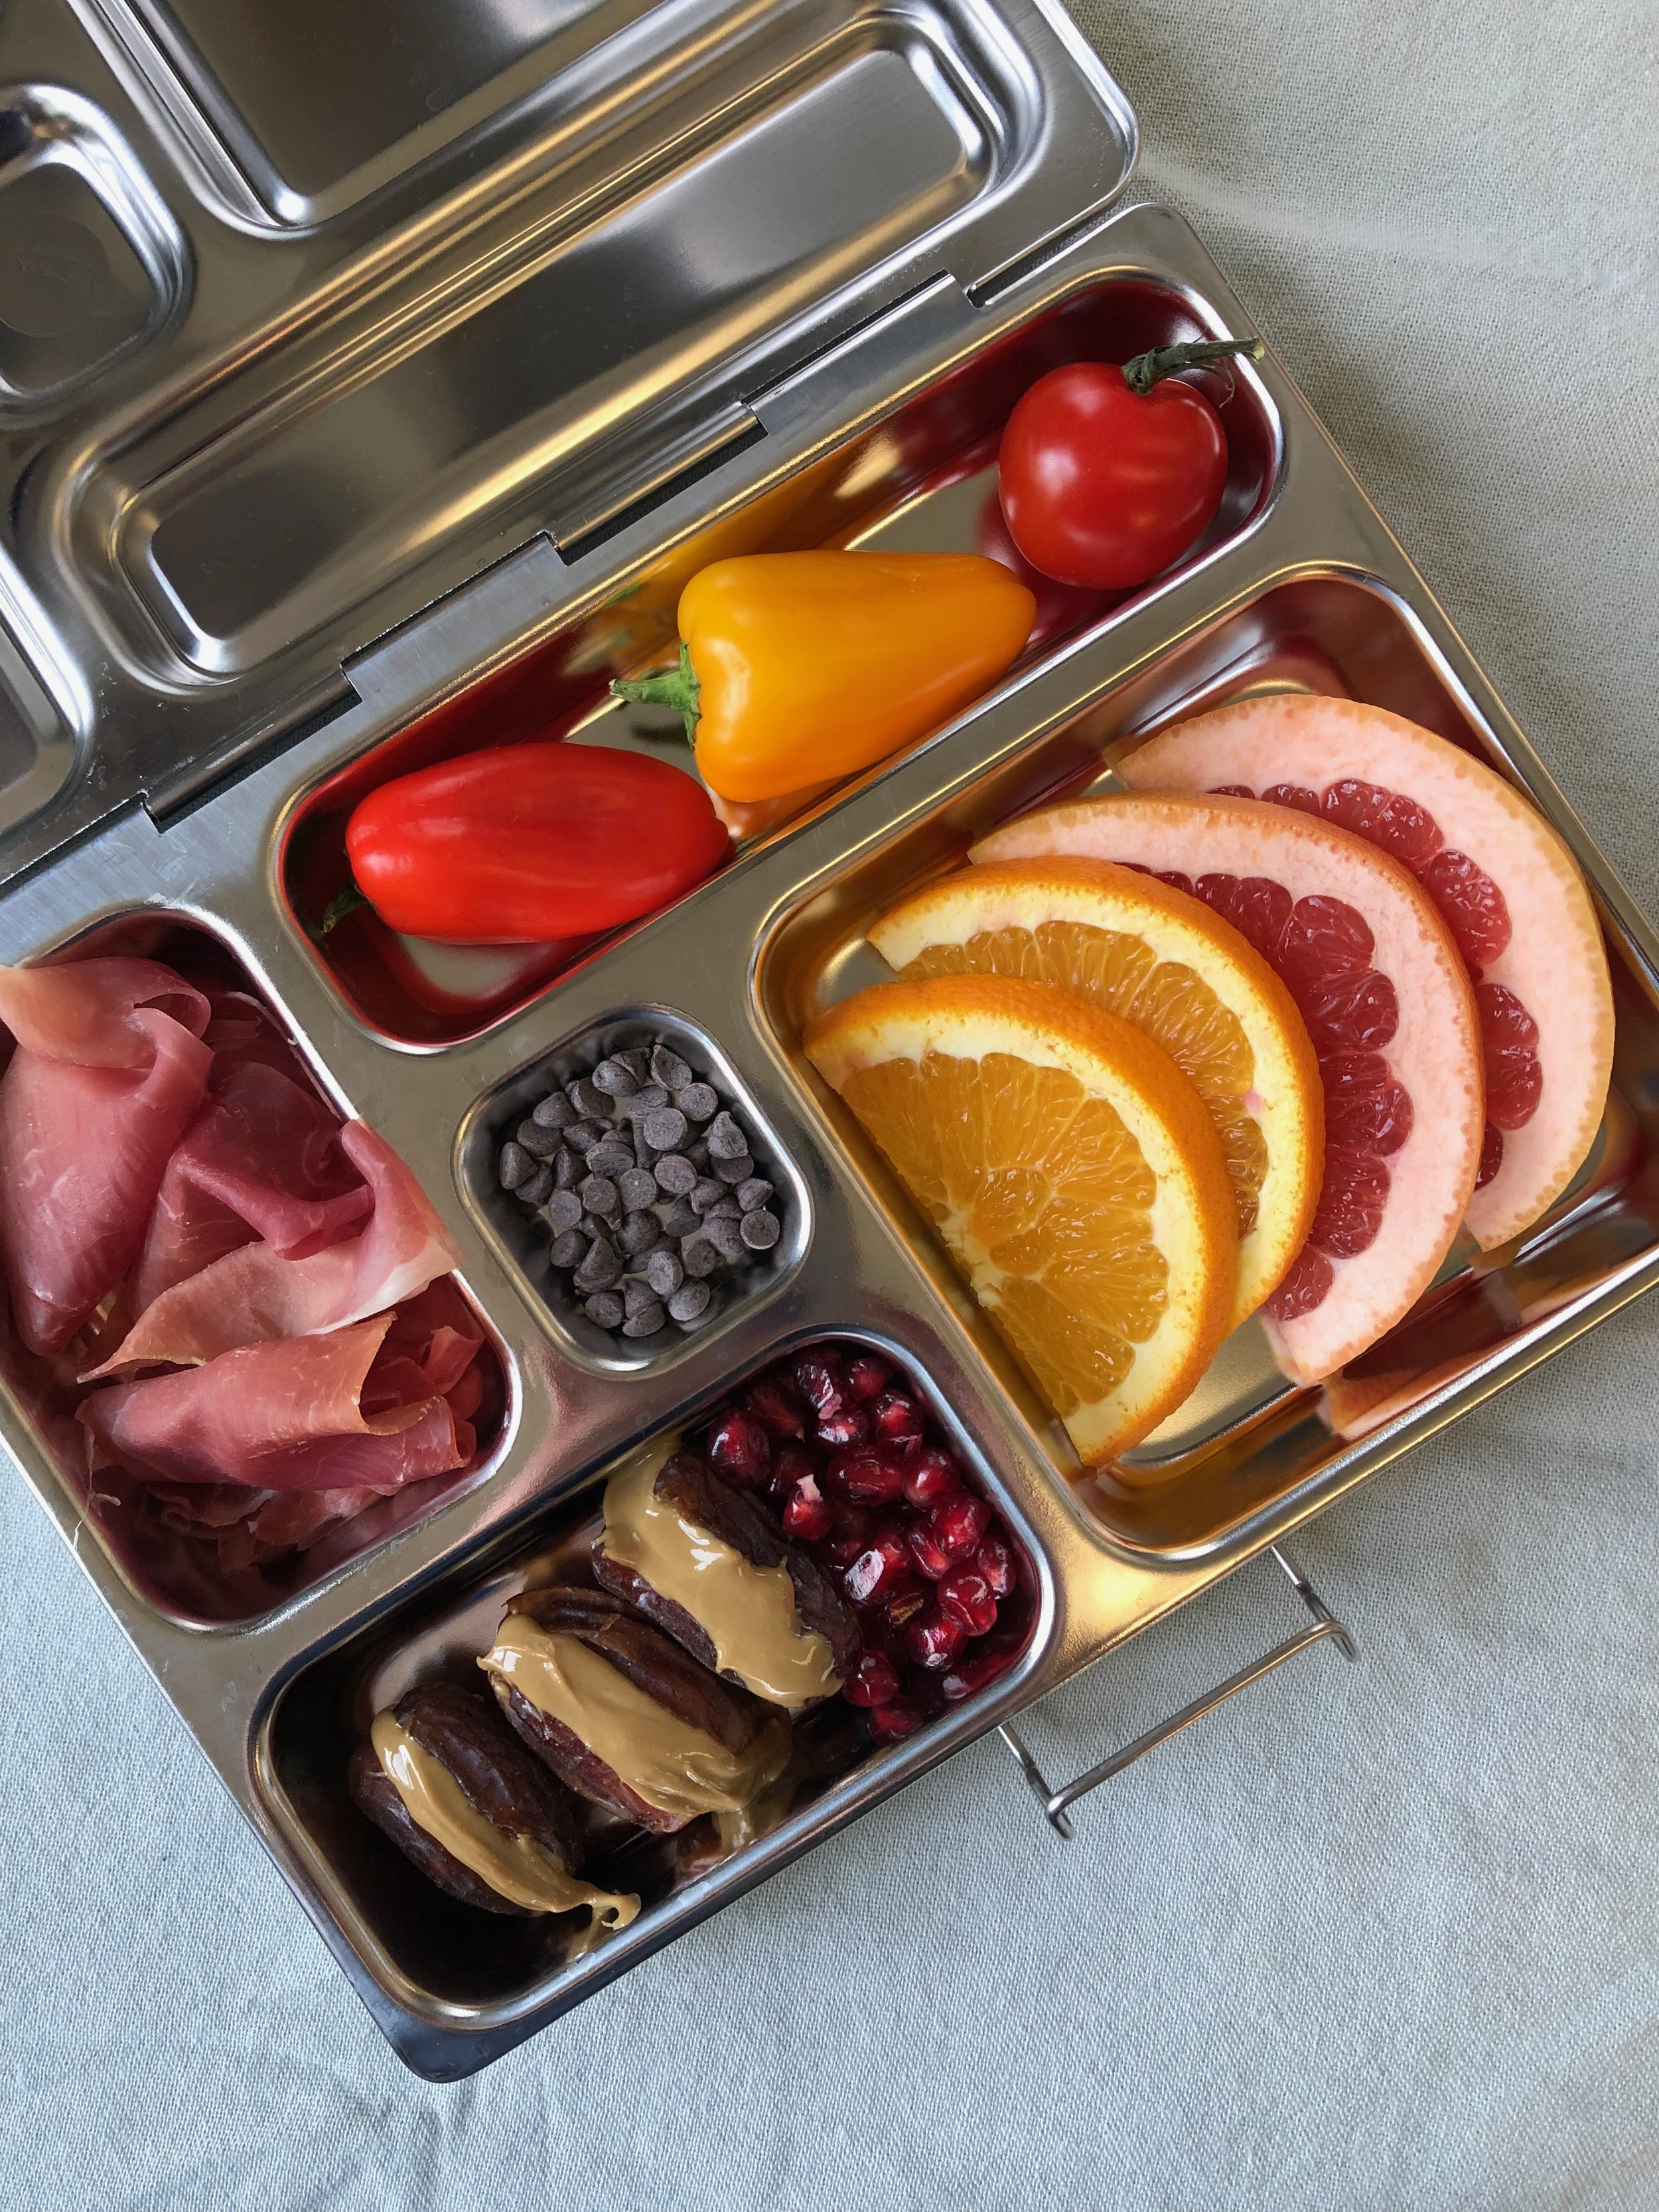 Lunchbox with prosciutto, peppers, grapefruit, pomegranate, dates with sunflower seed butter and chocolate chips.